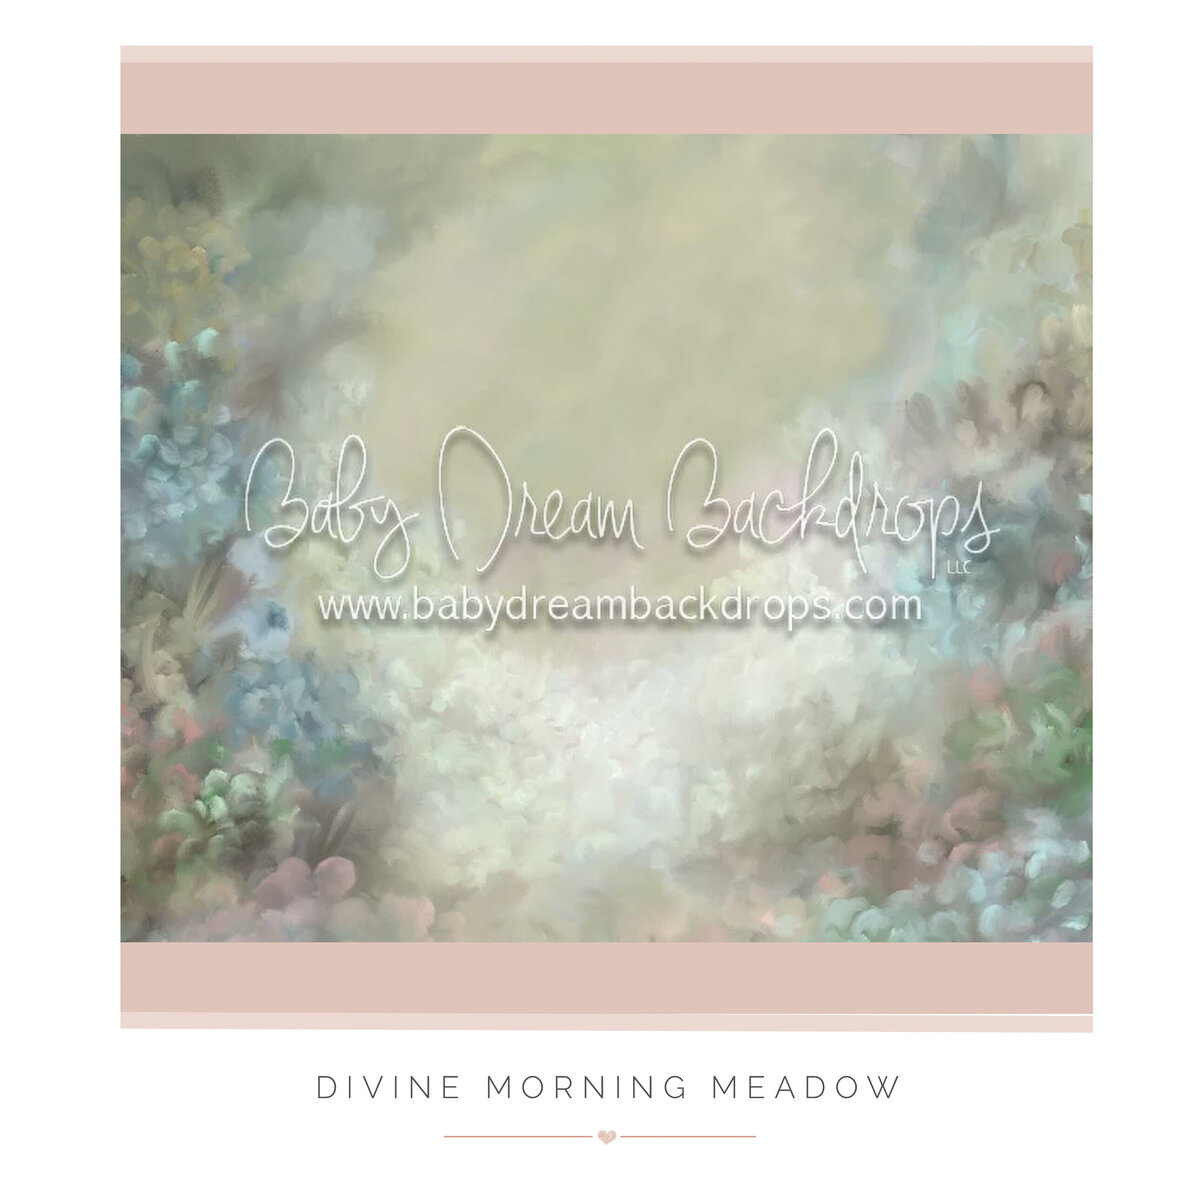 Divine Morning Meadow